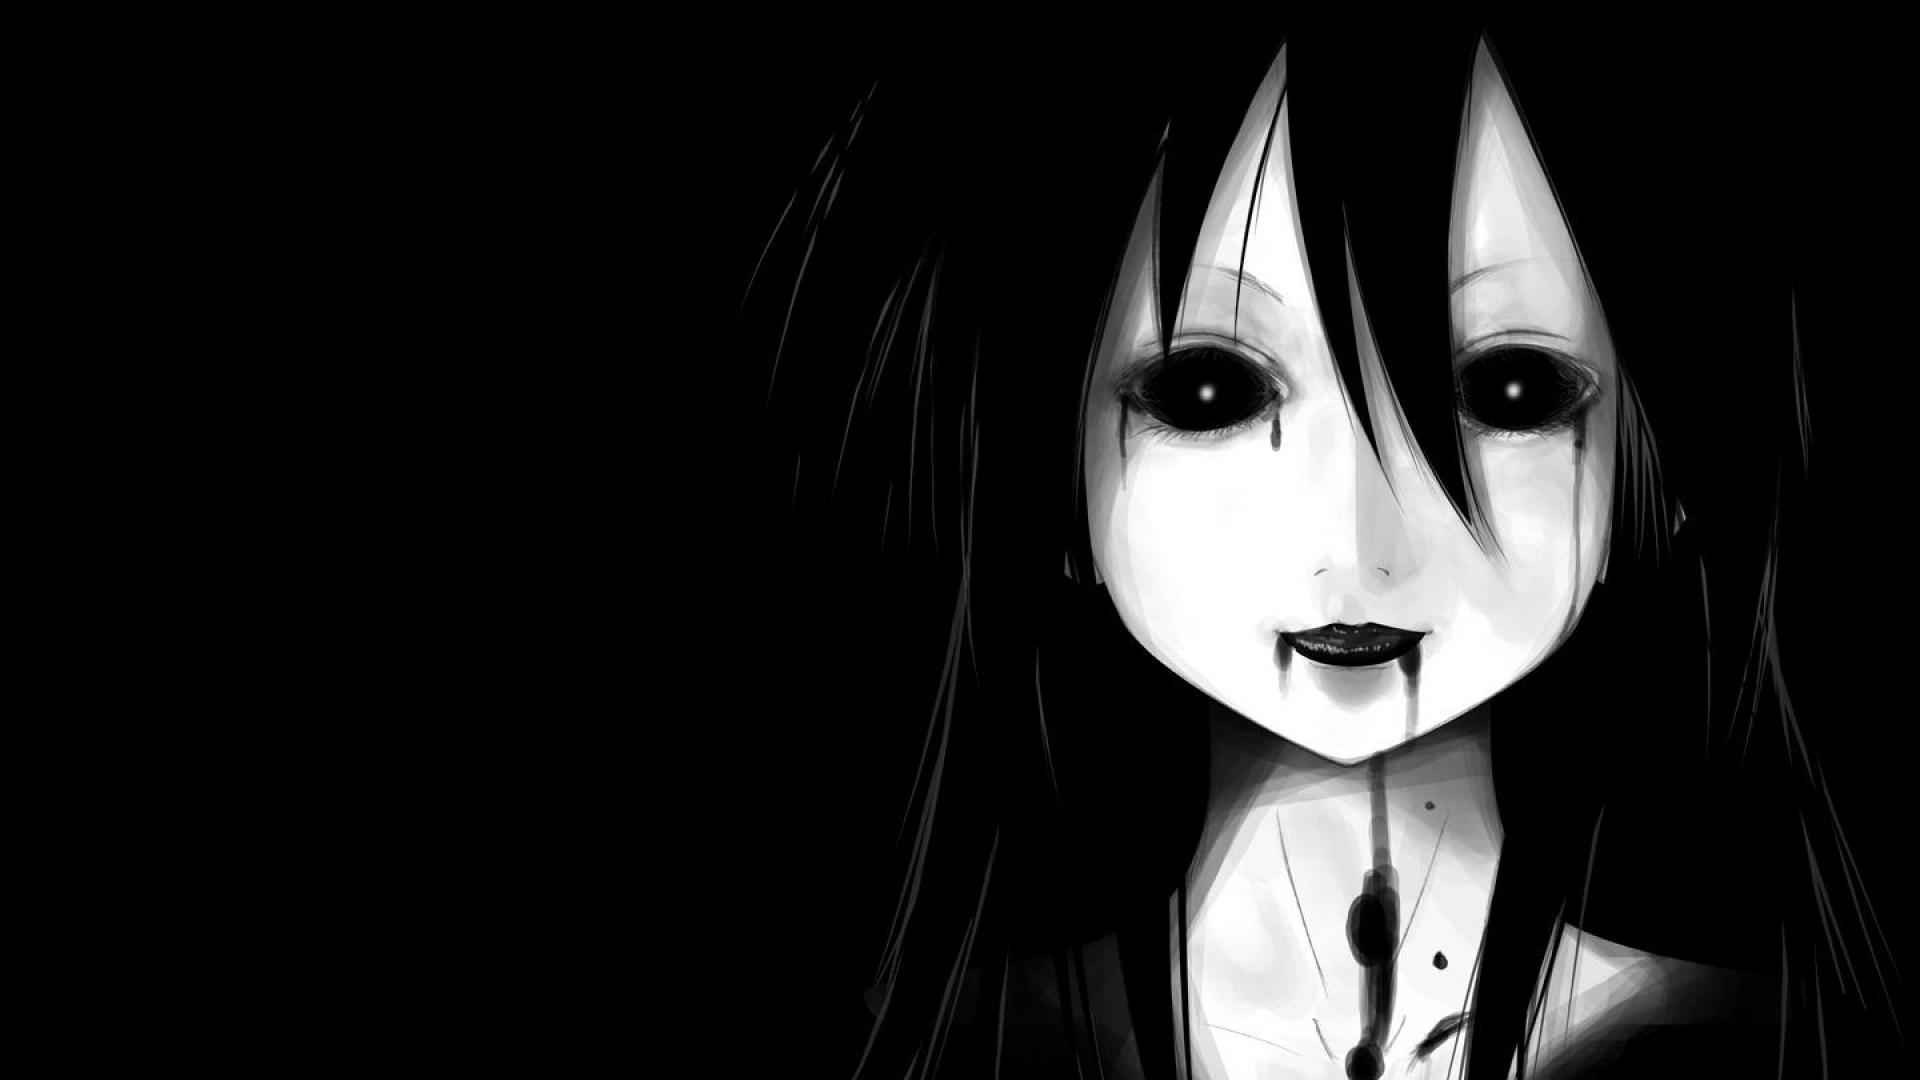 Anime Dark Wallpaper